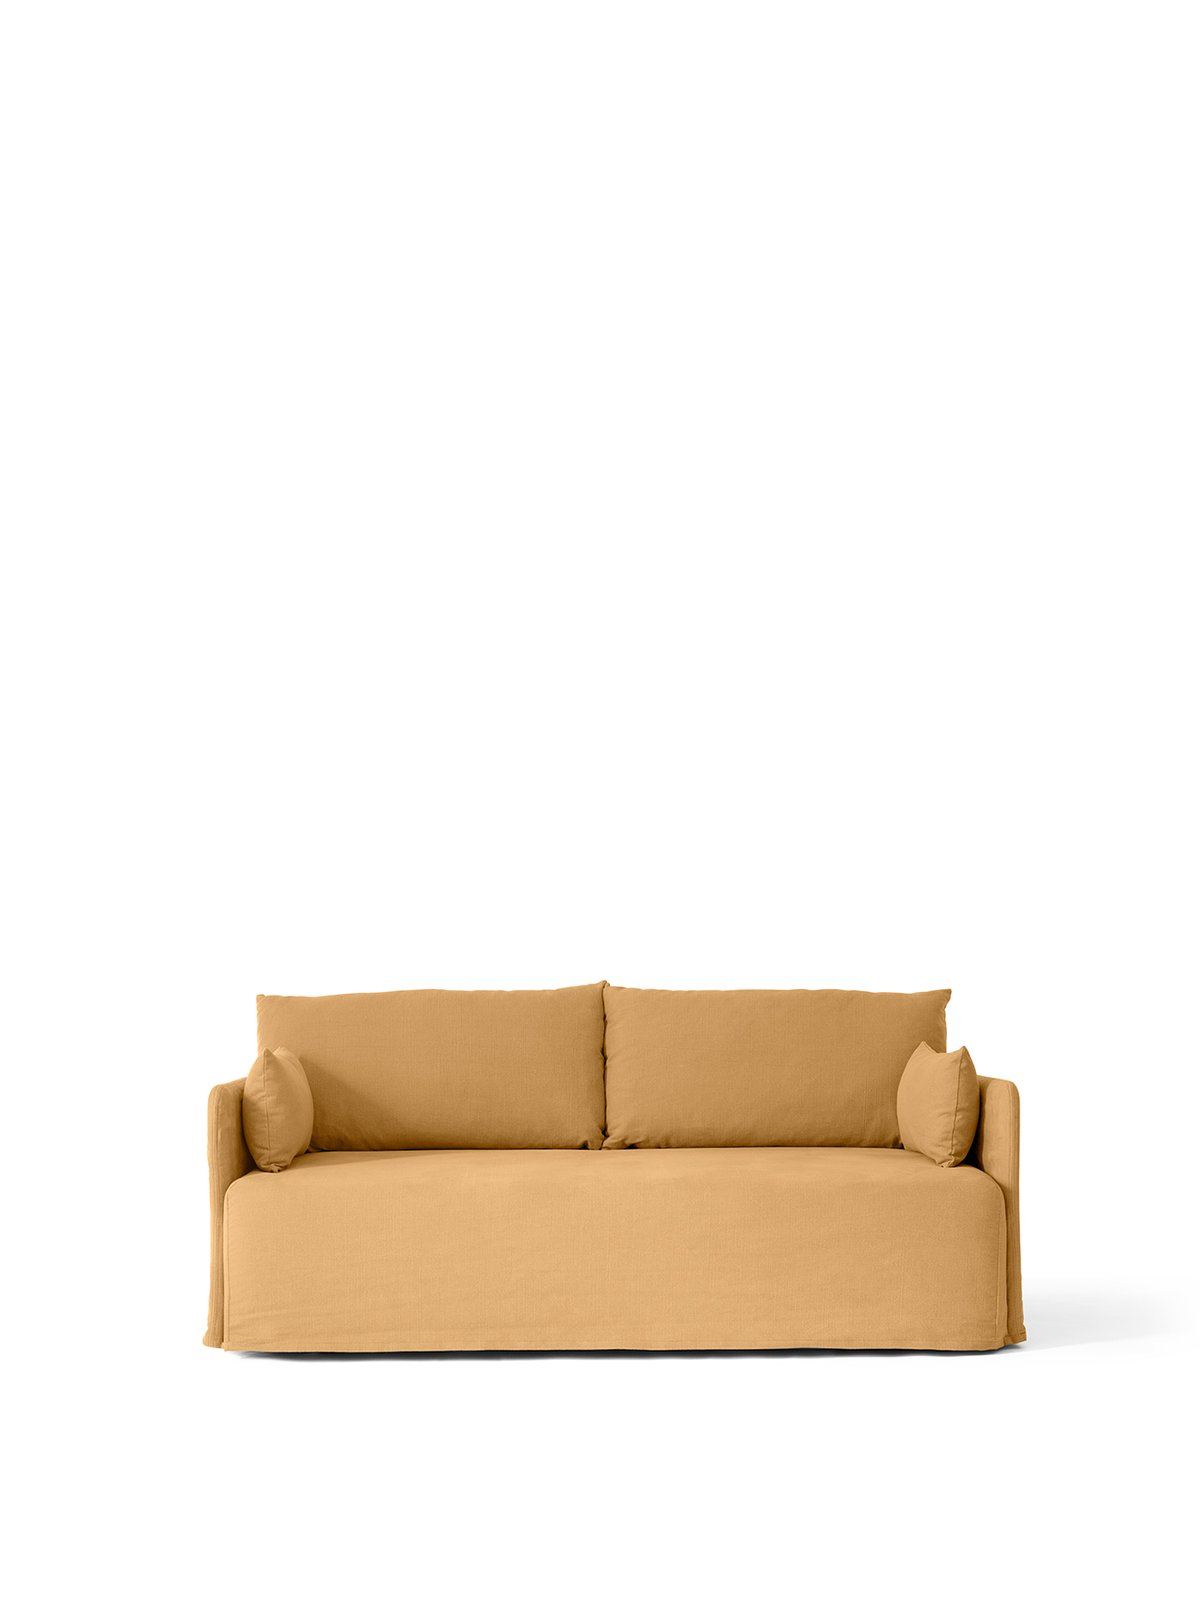 Offset 2 seater sofa with Loose Cover